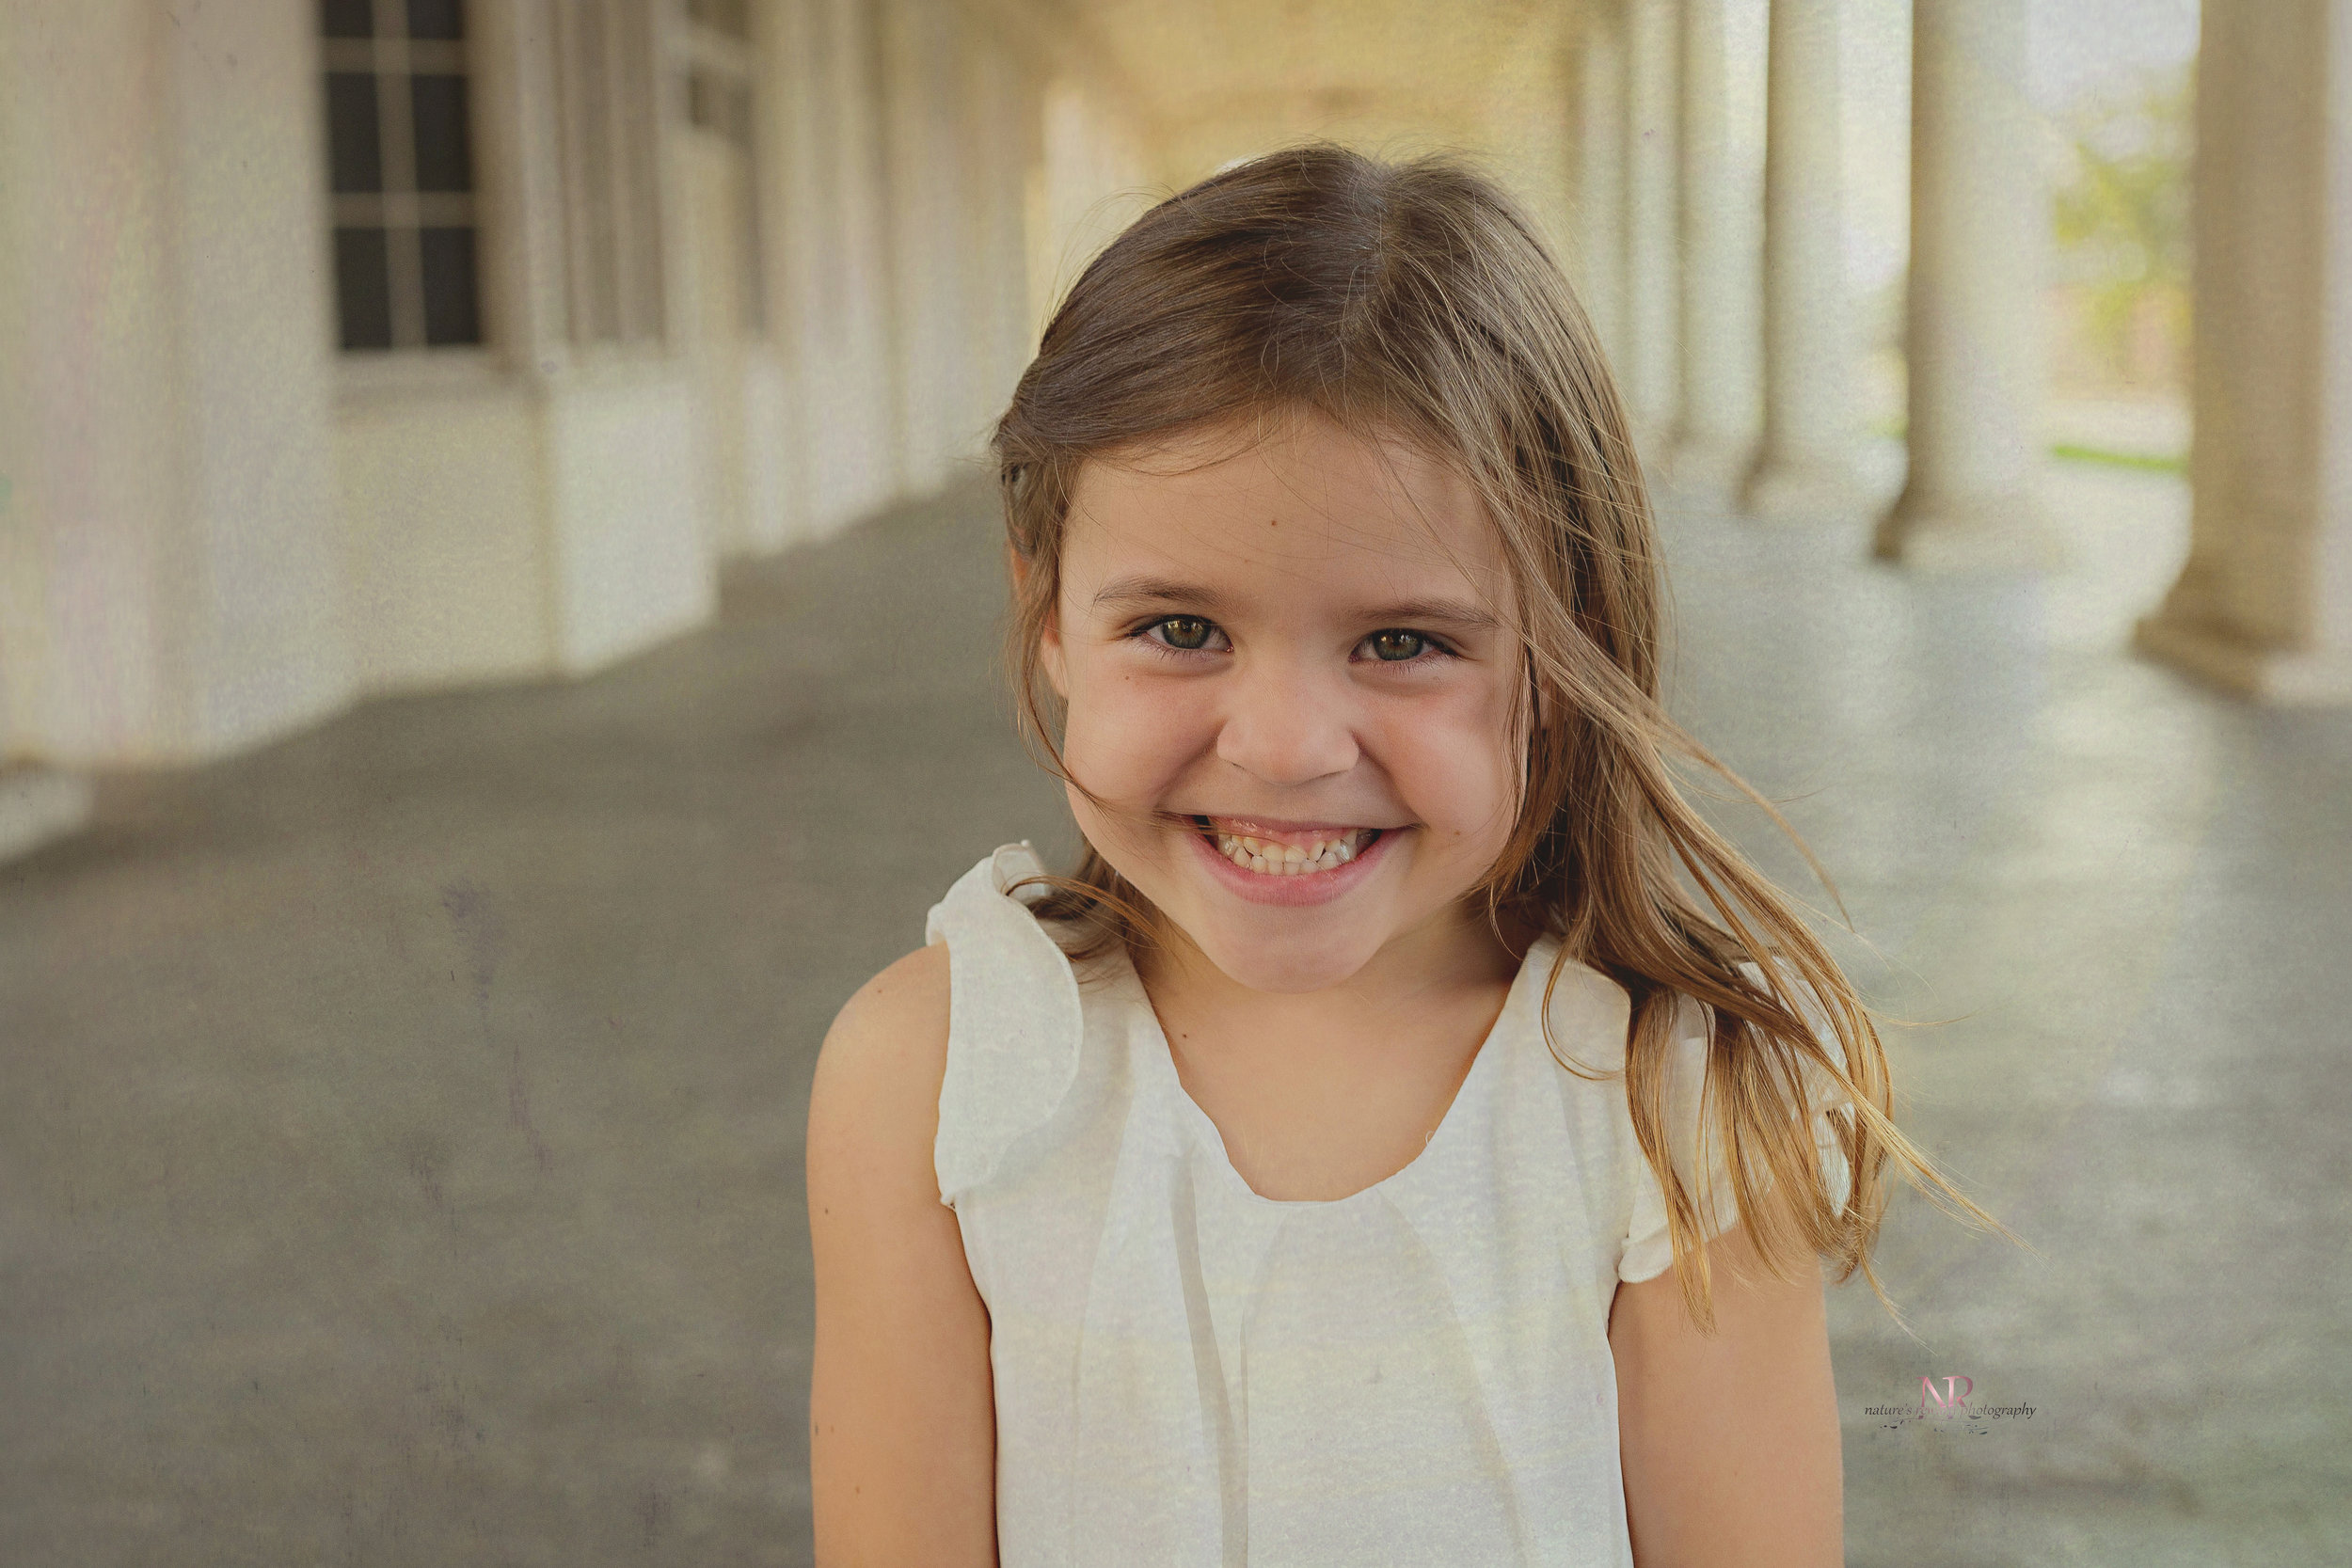 Lovely little girl portrait